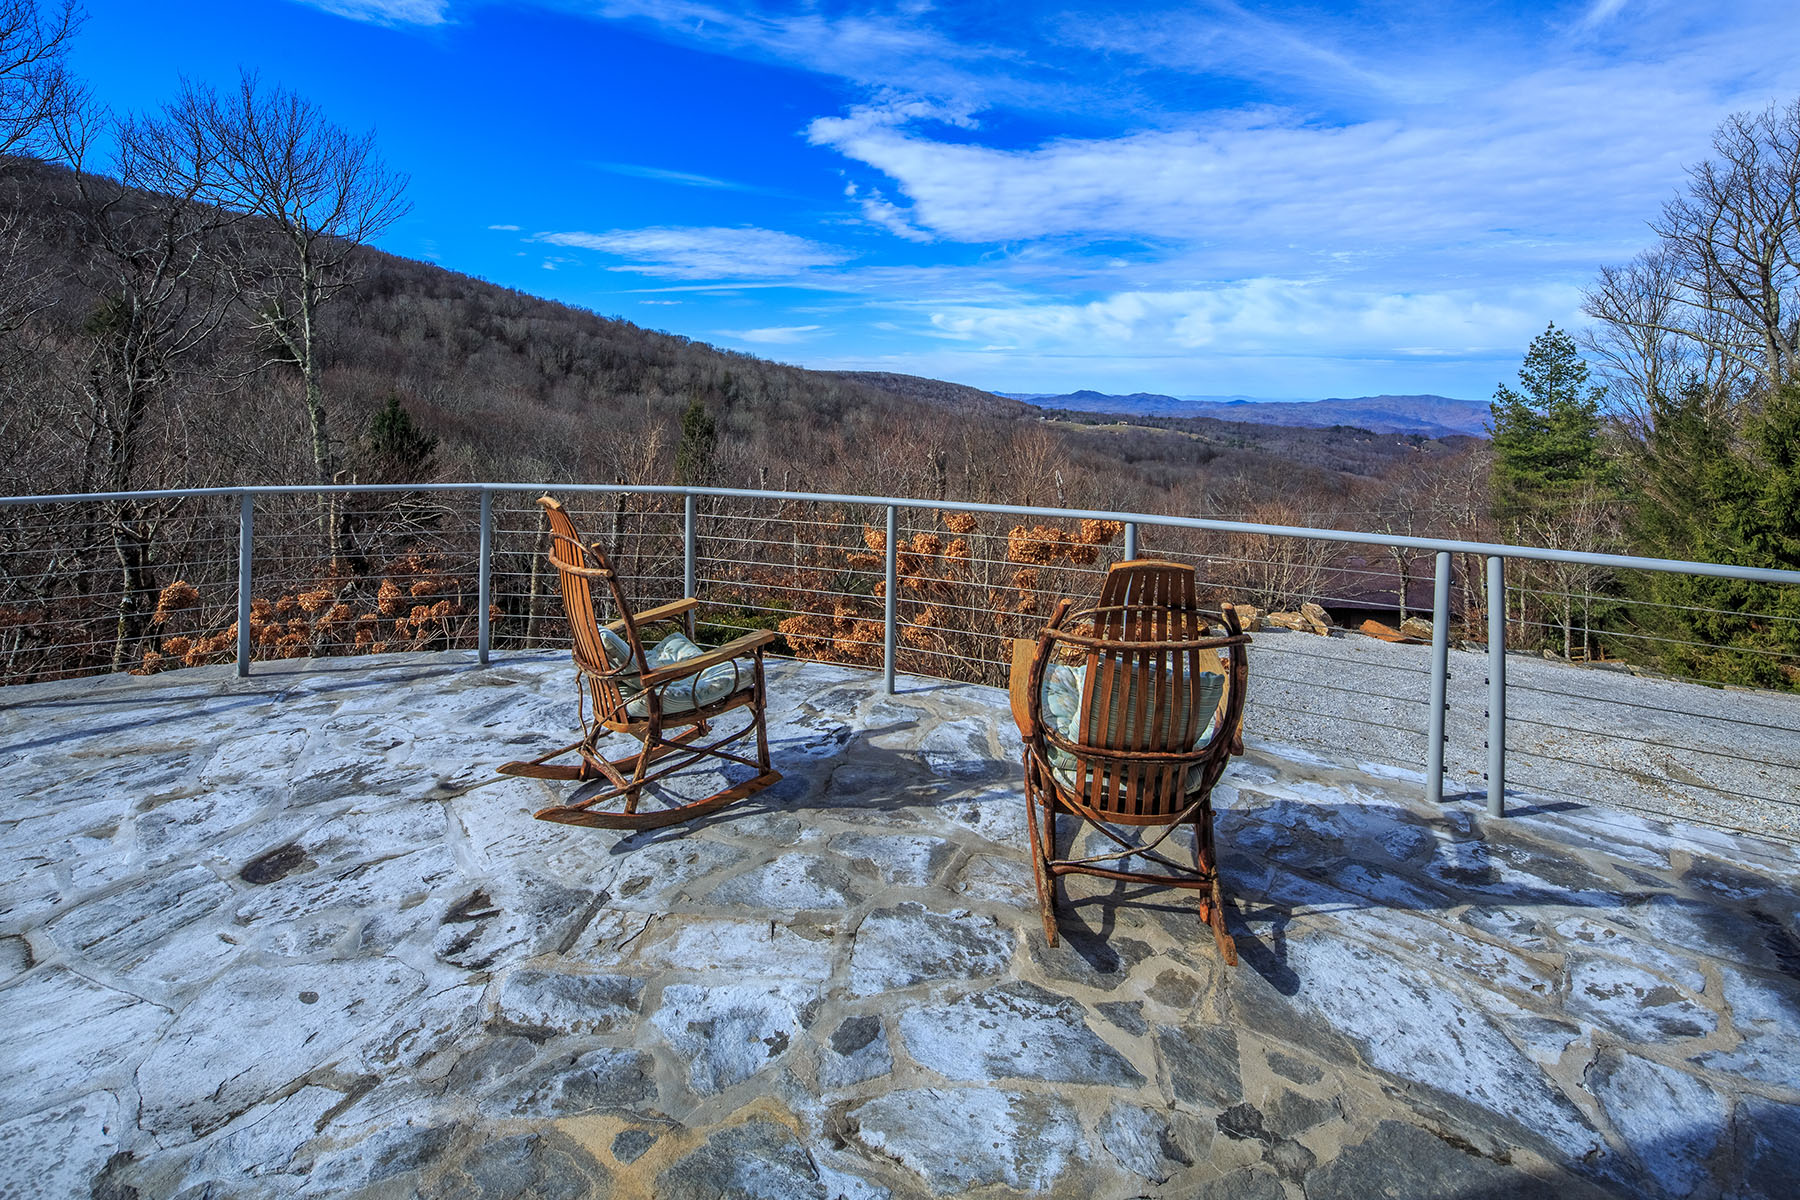 Single Family Homes for Sale at BEECH MOUNTAIN 141 Raven Rd Beech Mountain, North Carolina 28604 United States